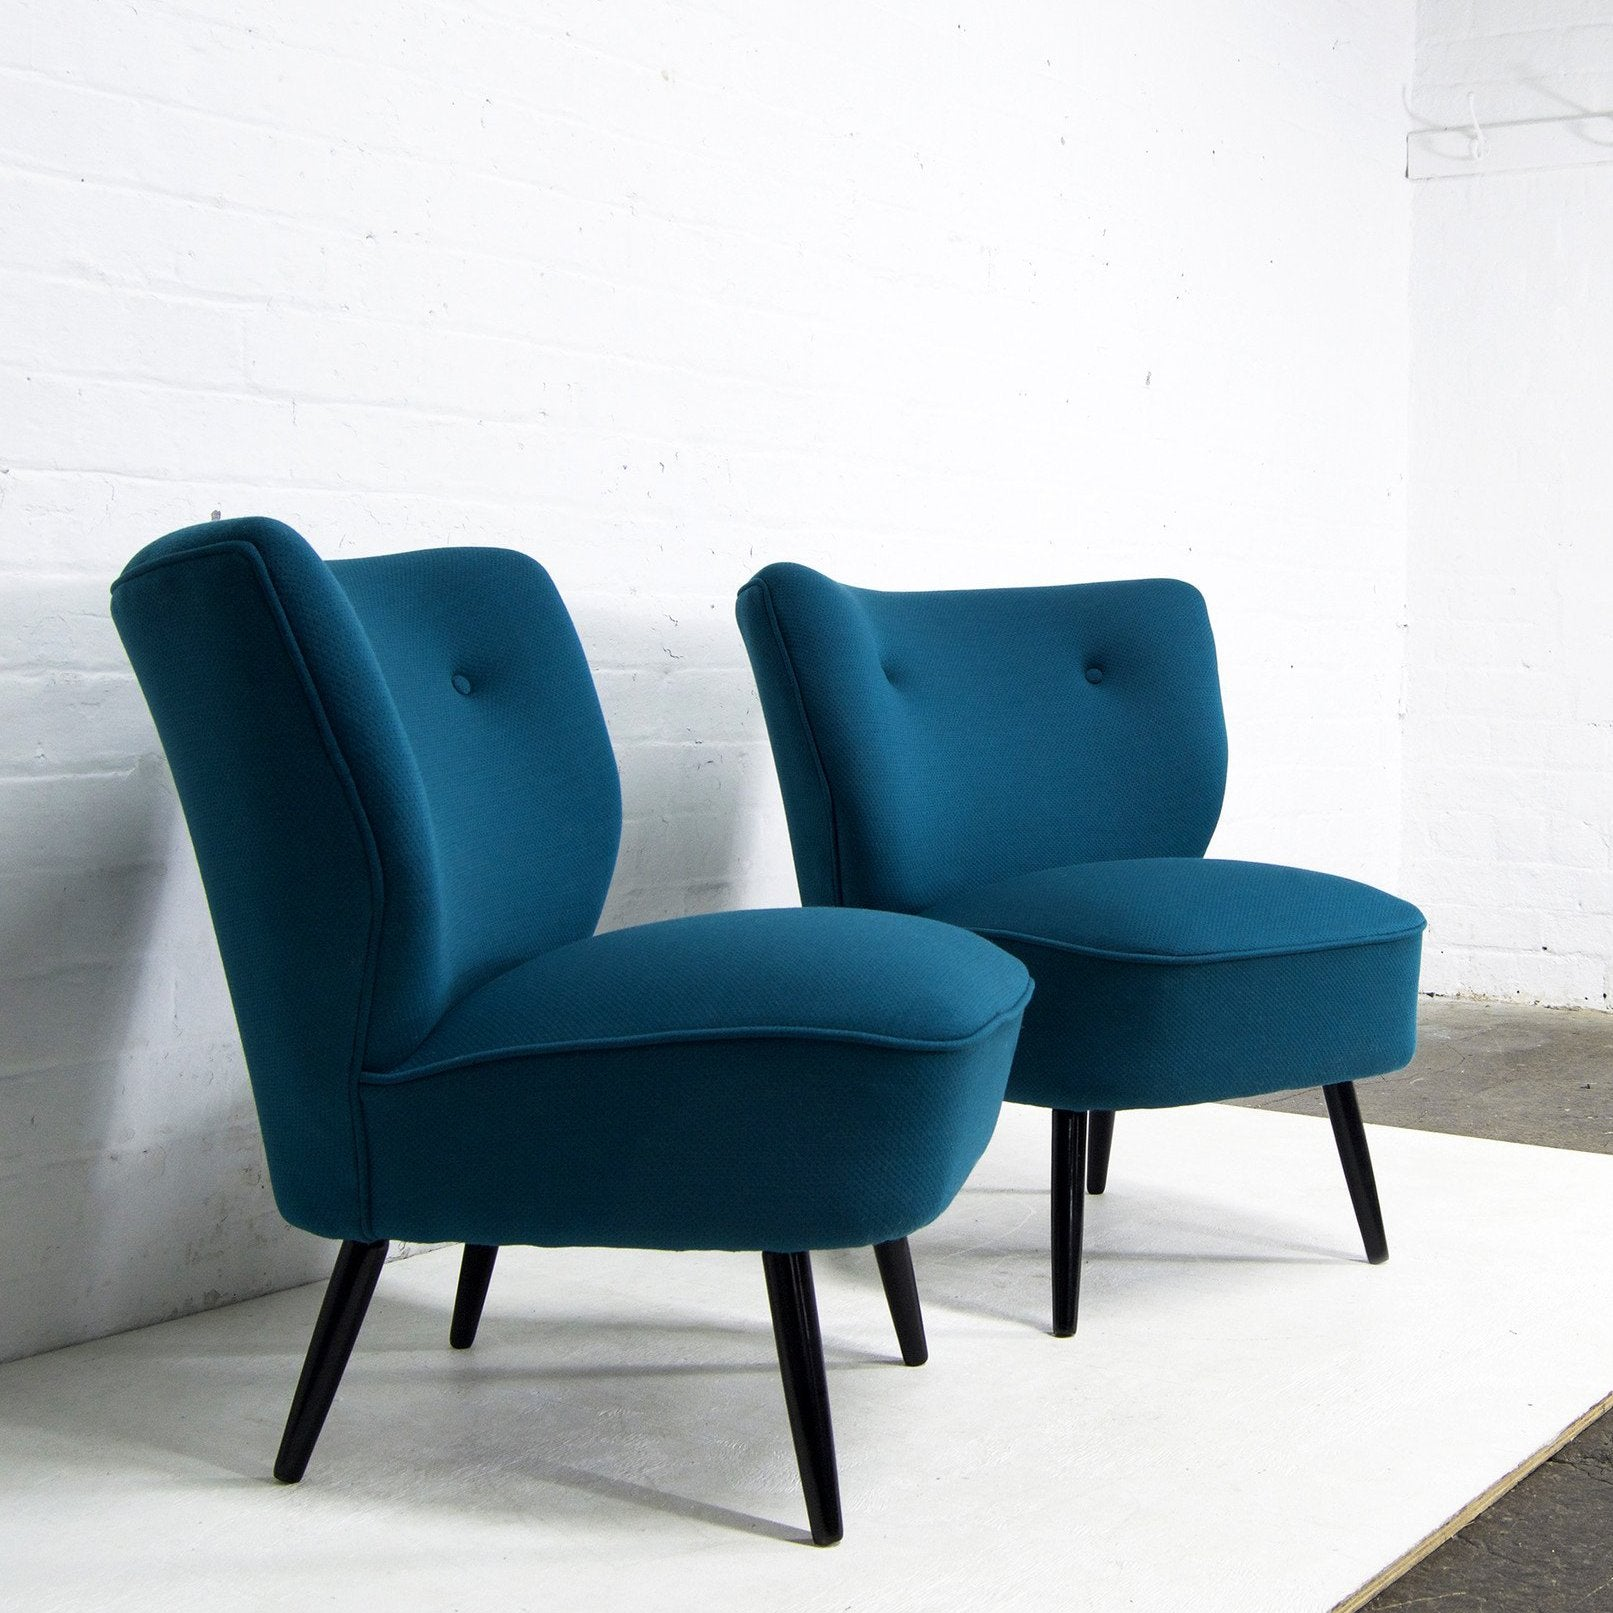 Febrik Textile Cocktail Chairs in Teal from Florrie and Bill